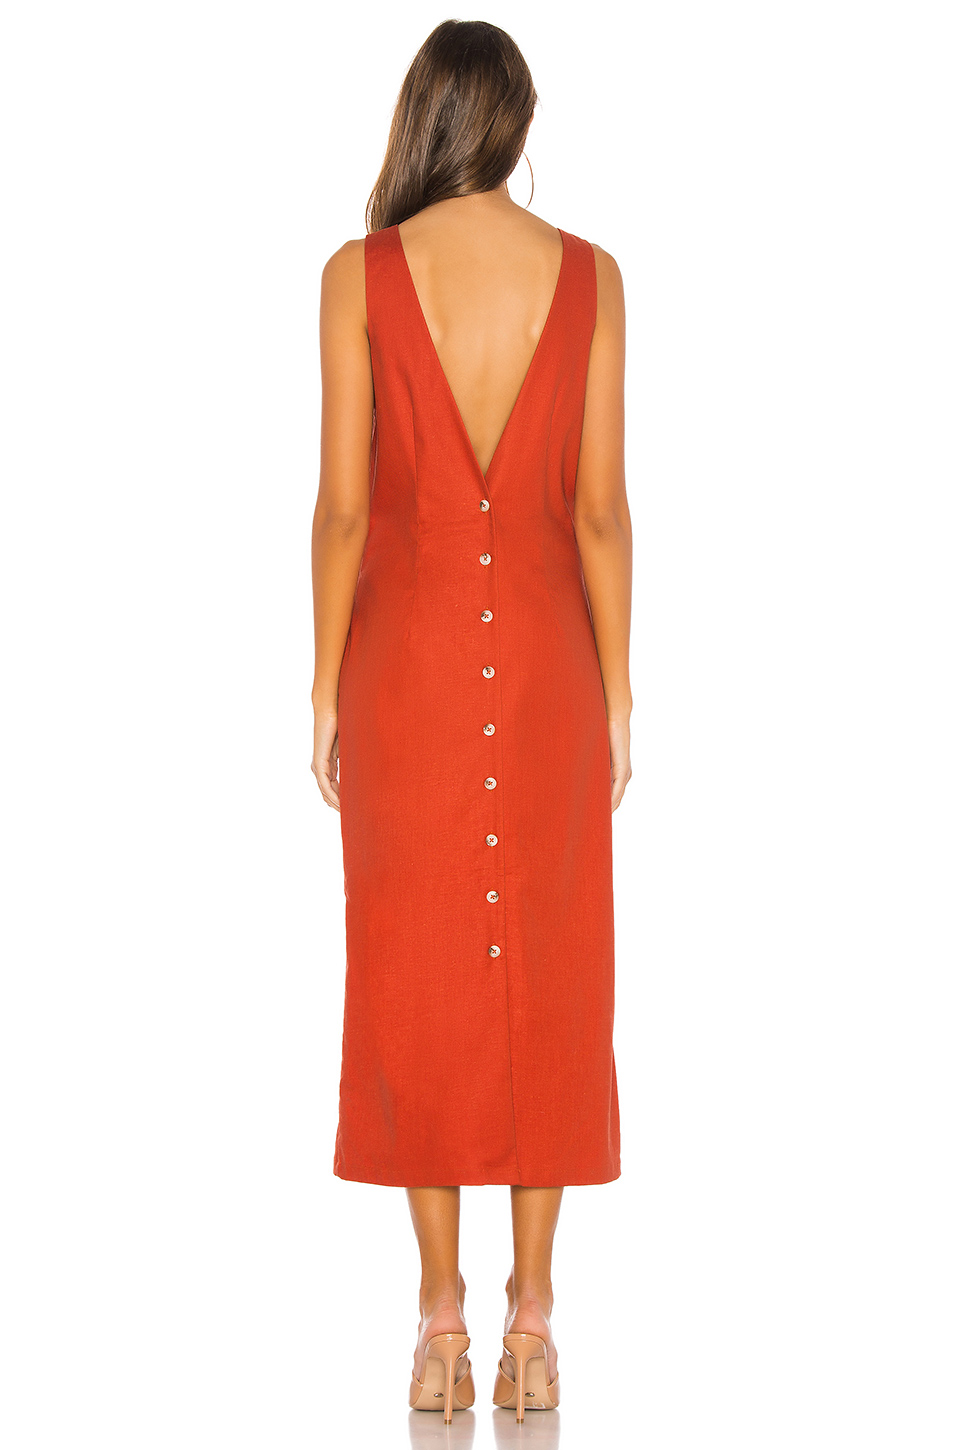 L'Academie The Darcy Midi Dress